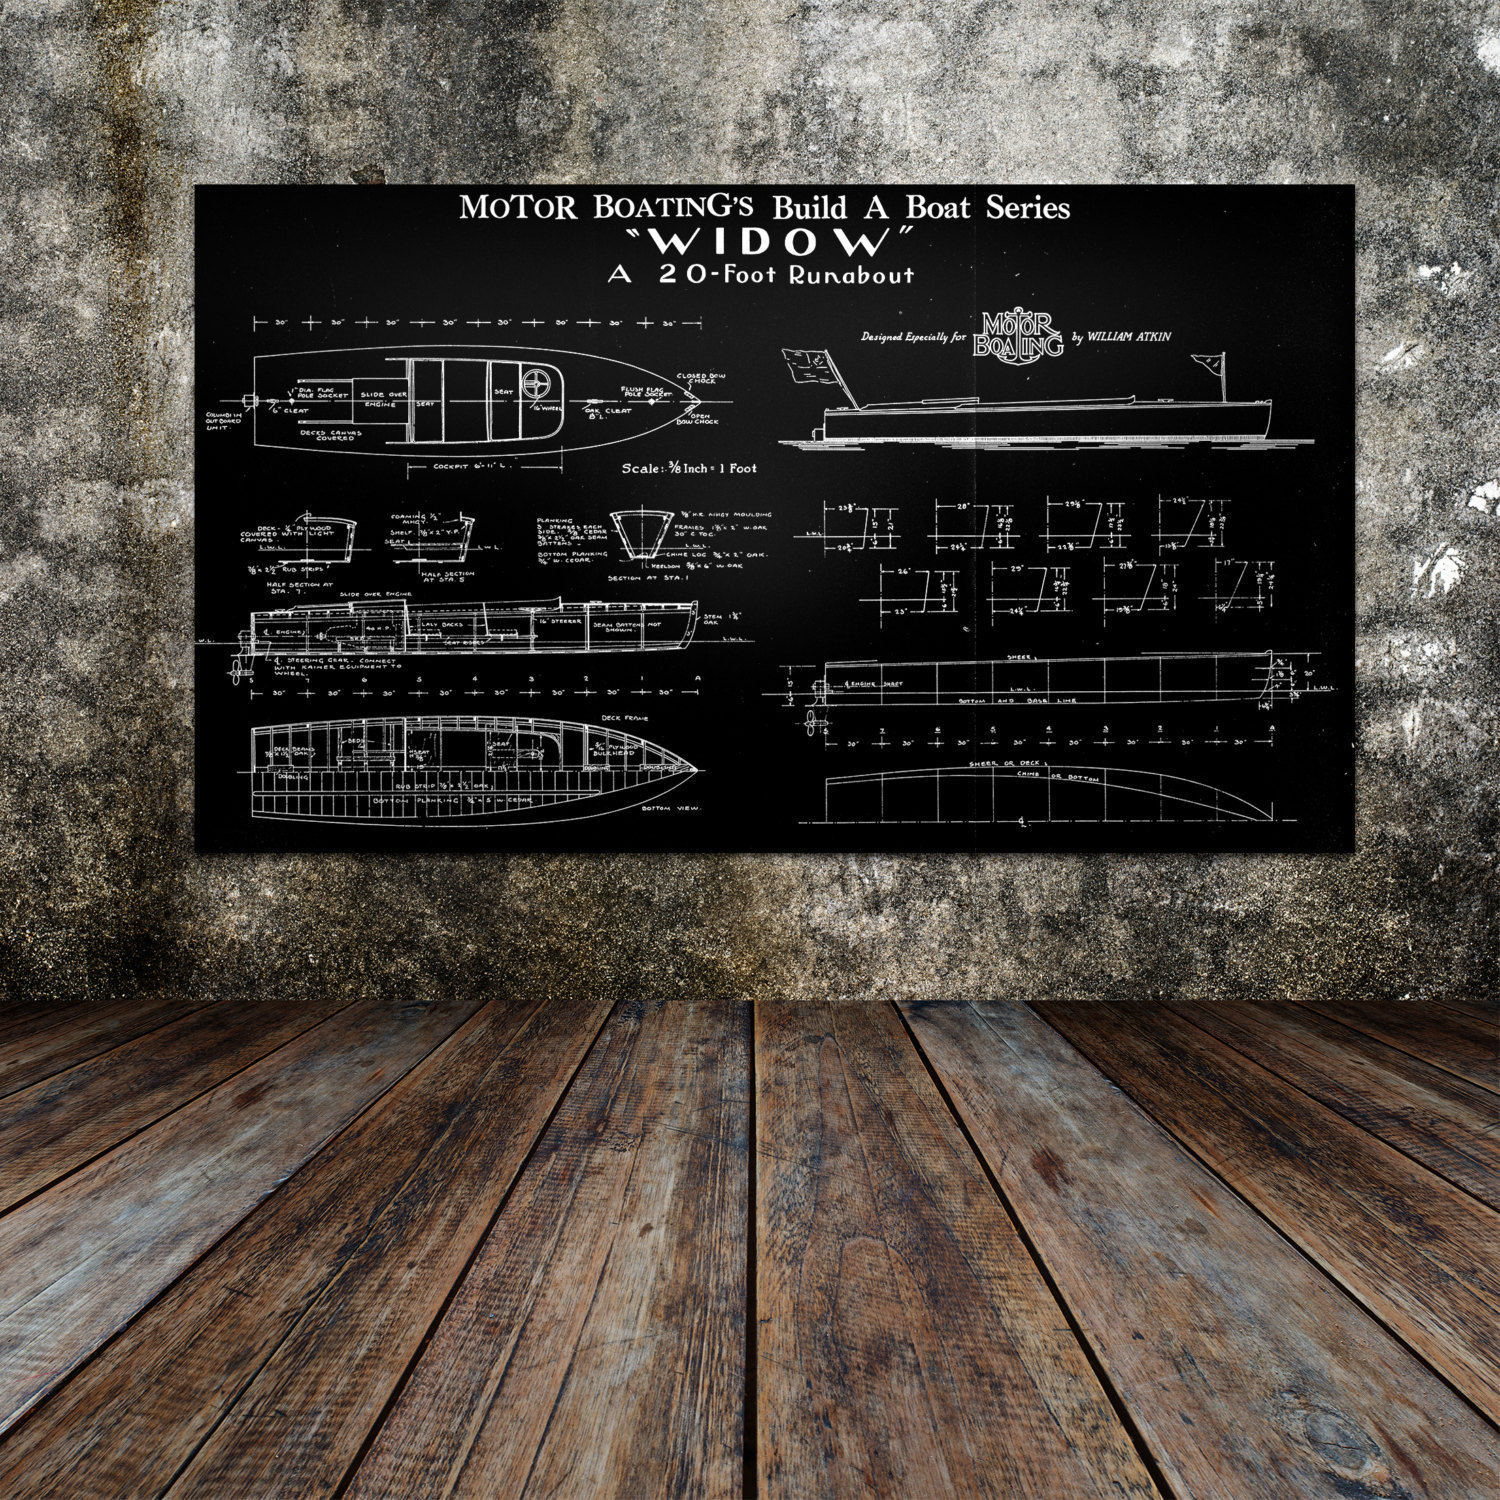 Print of vintage widow boat blueprint from motor boatings build a print of vintage widow boat blueprint from motor boatings build a boat series on your choice of matte paper photo paper or canvas malvernweather Choice Image